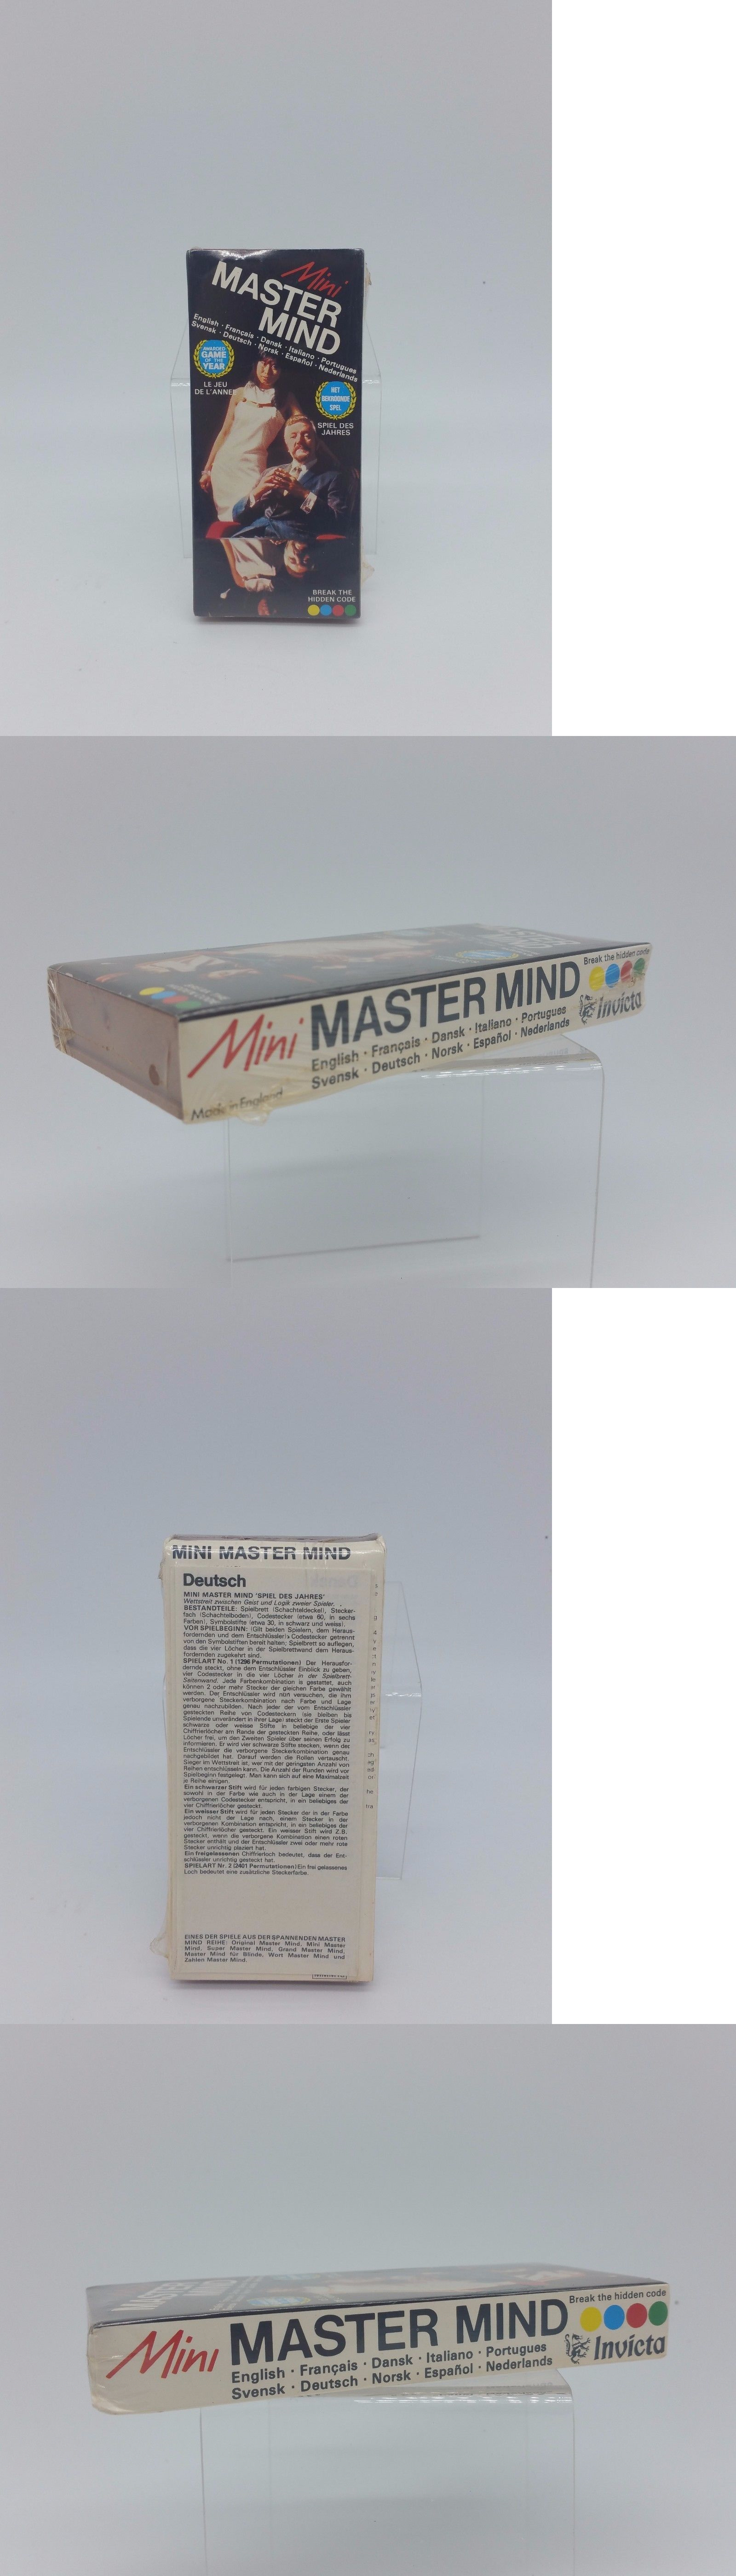 Vintage manufacture 19100 vintage nos mini master mind travel game by invicta brand new factory